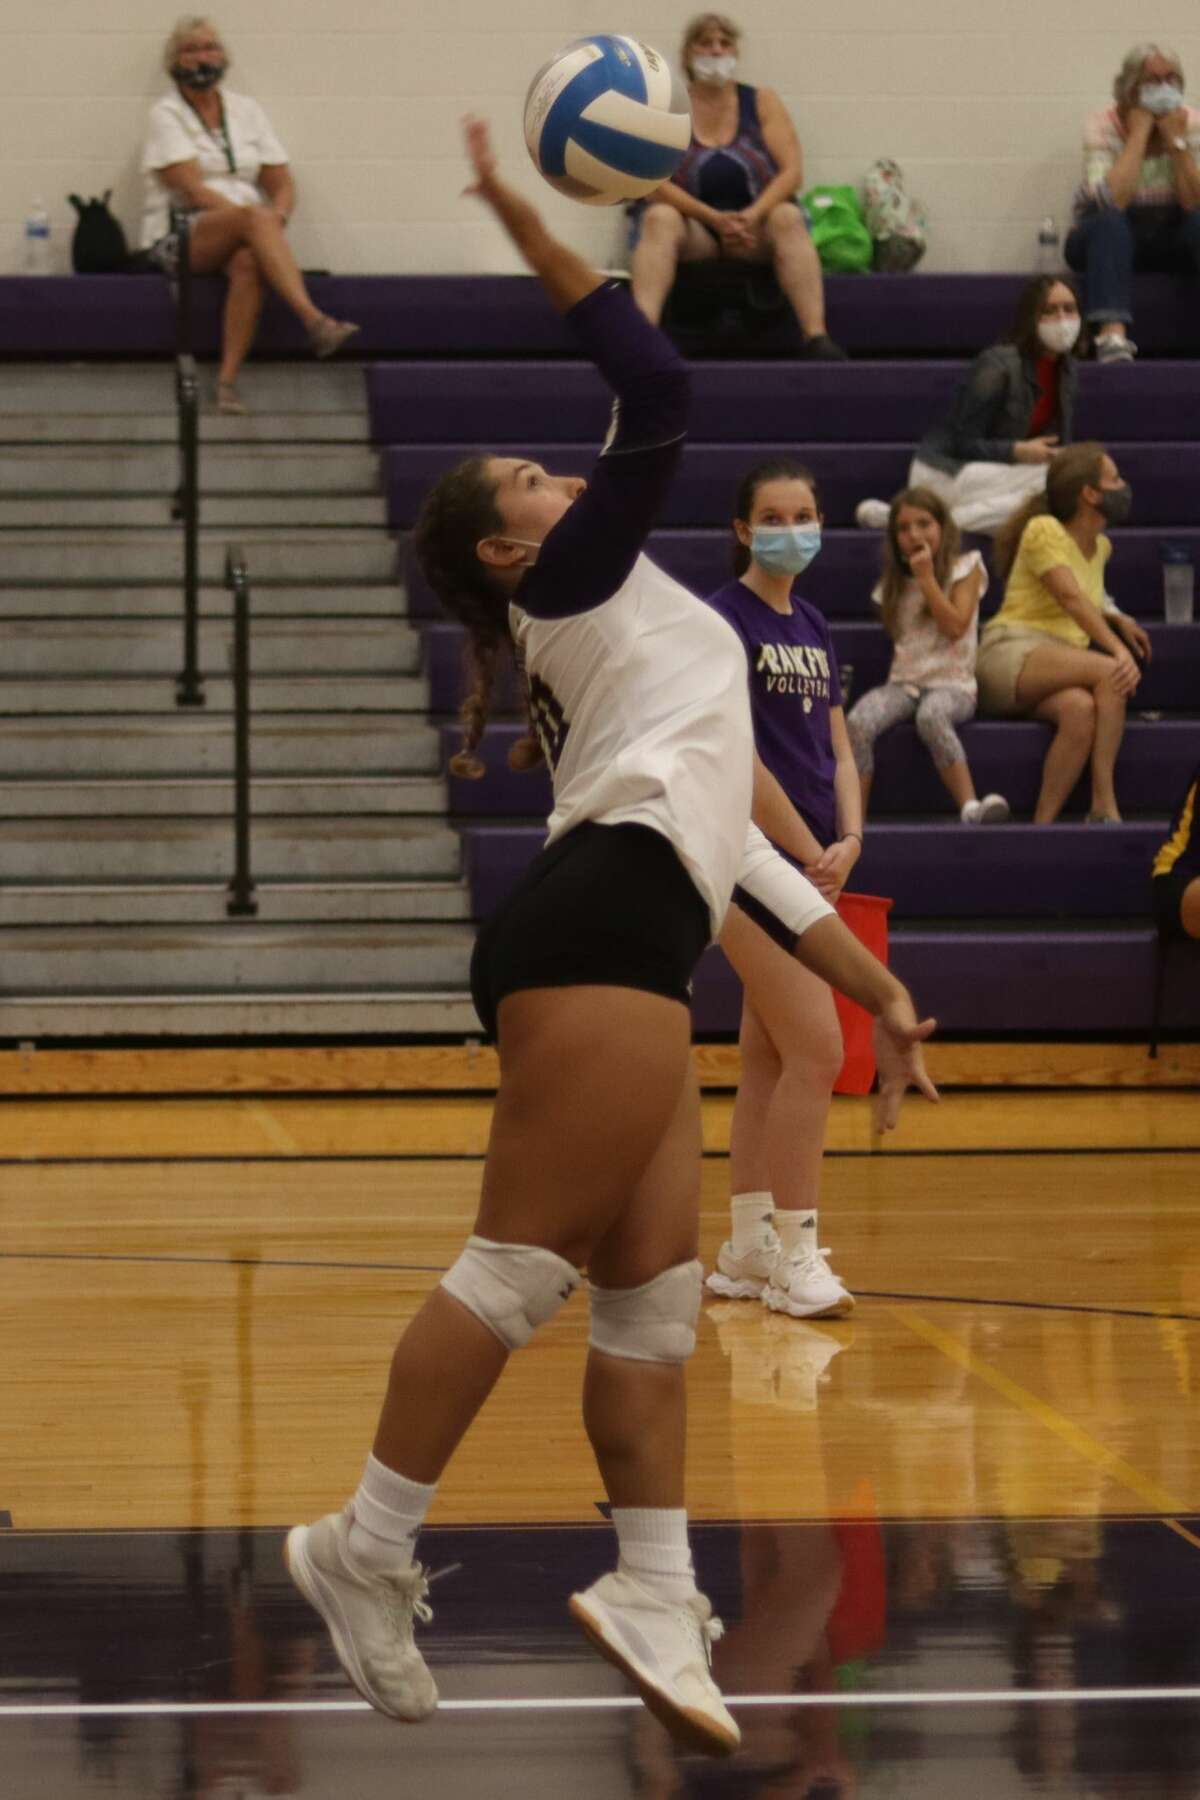 The Frankfort Panthers host the Kingsley Stags in varsity volleyball on Sept. 15.